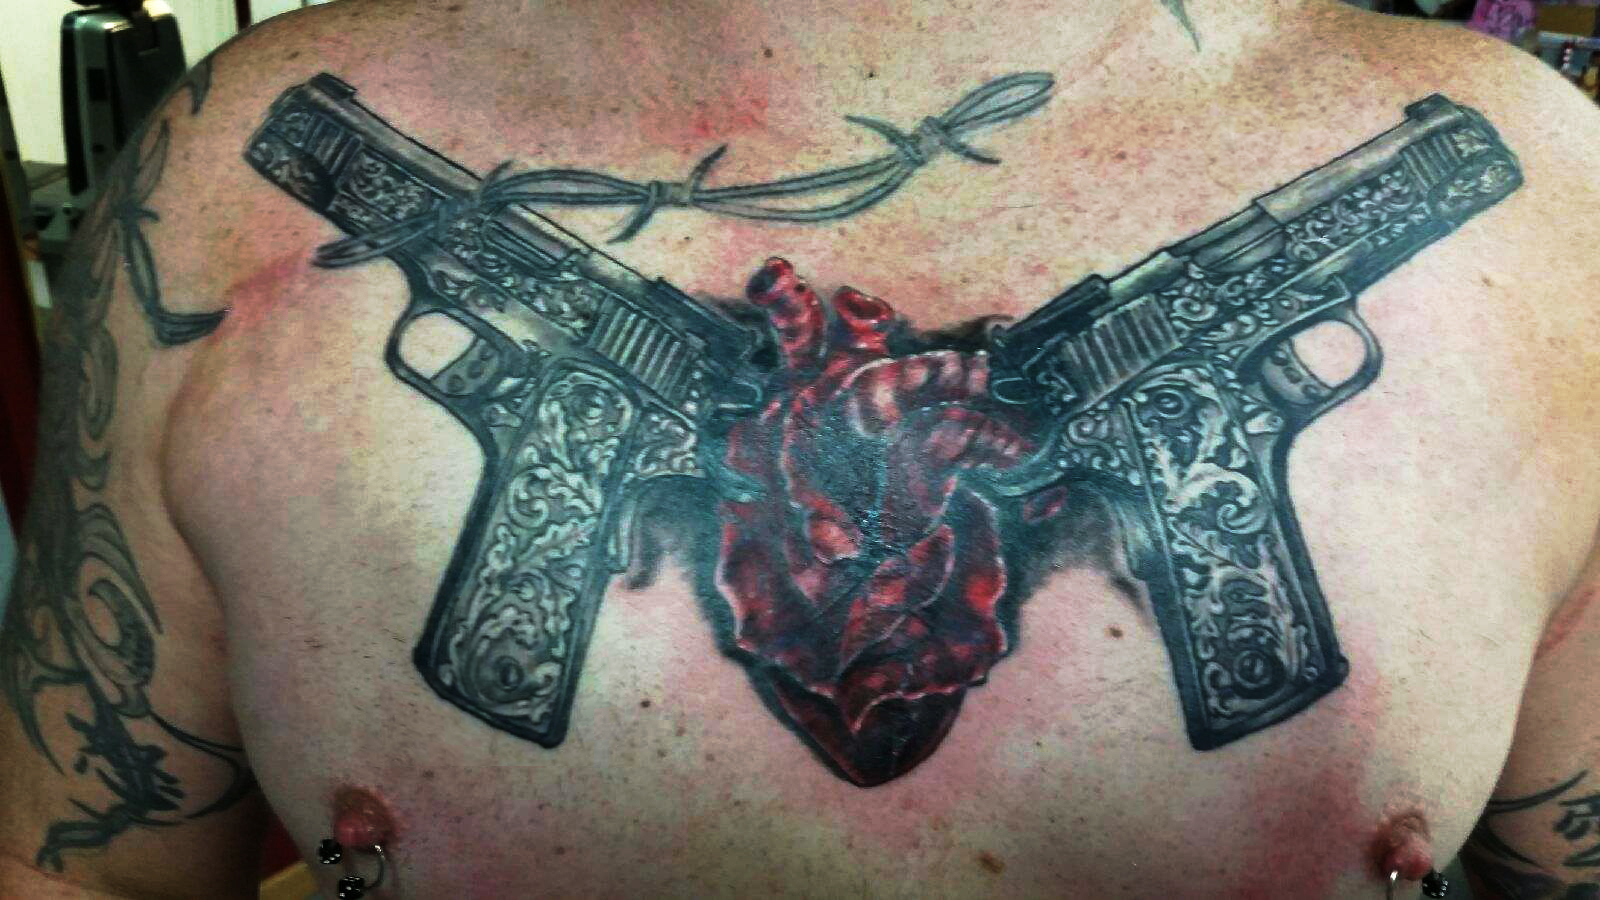 Black And Grey Guns With Red Heart Tattoo On Chest